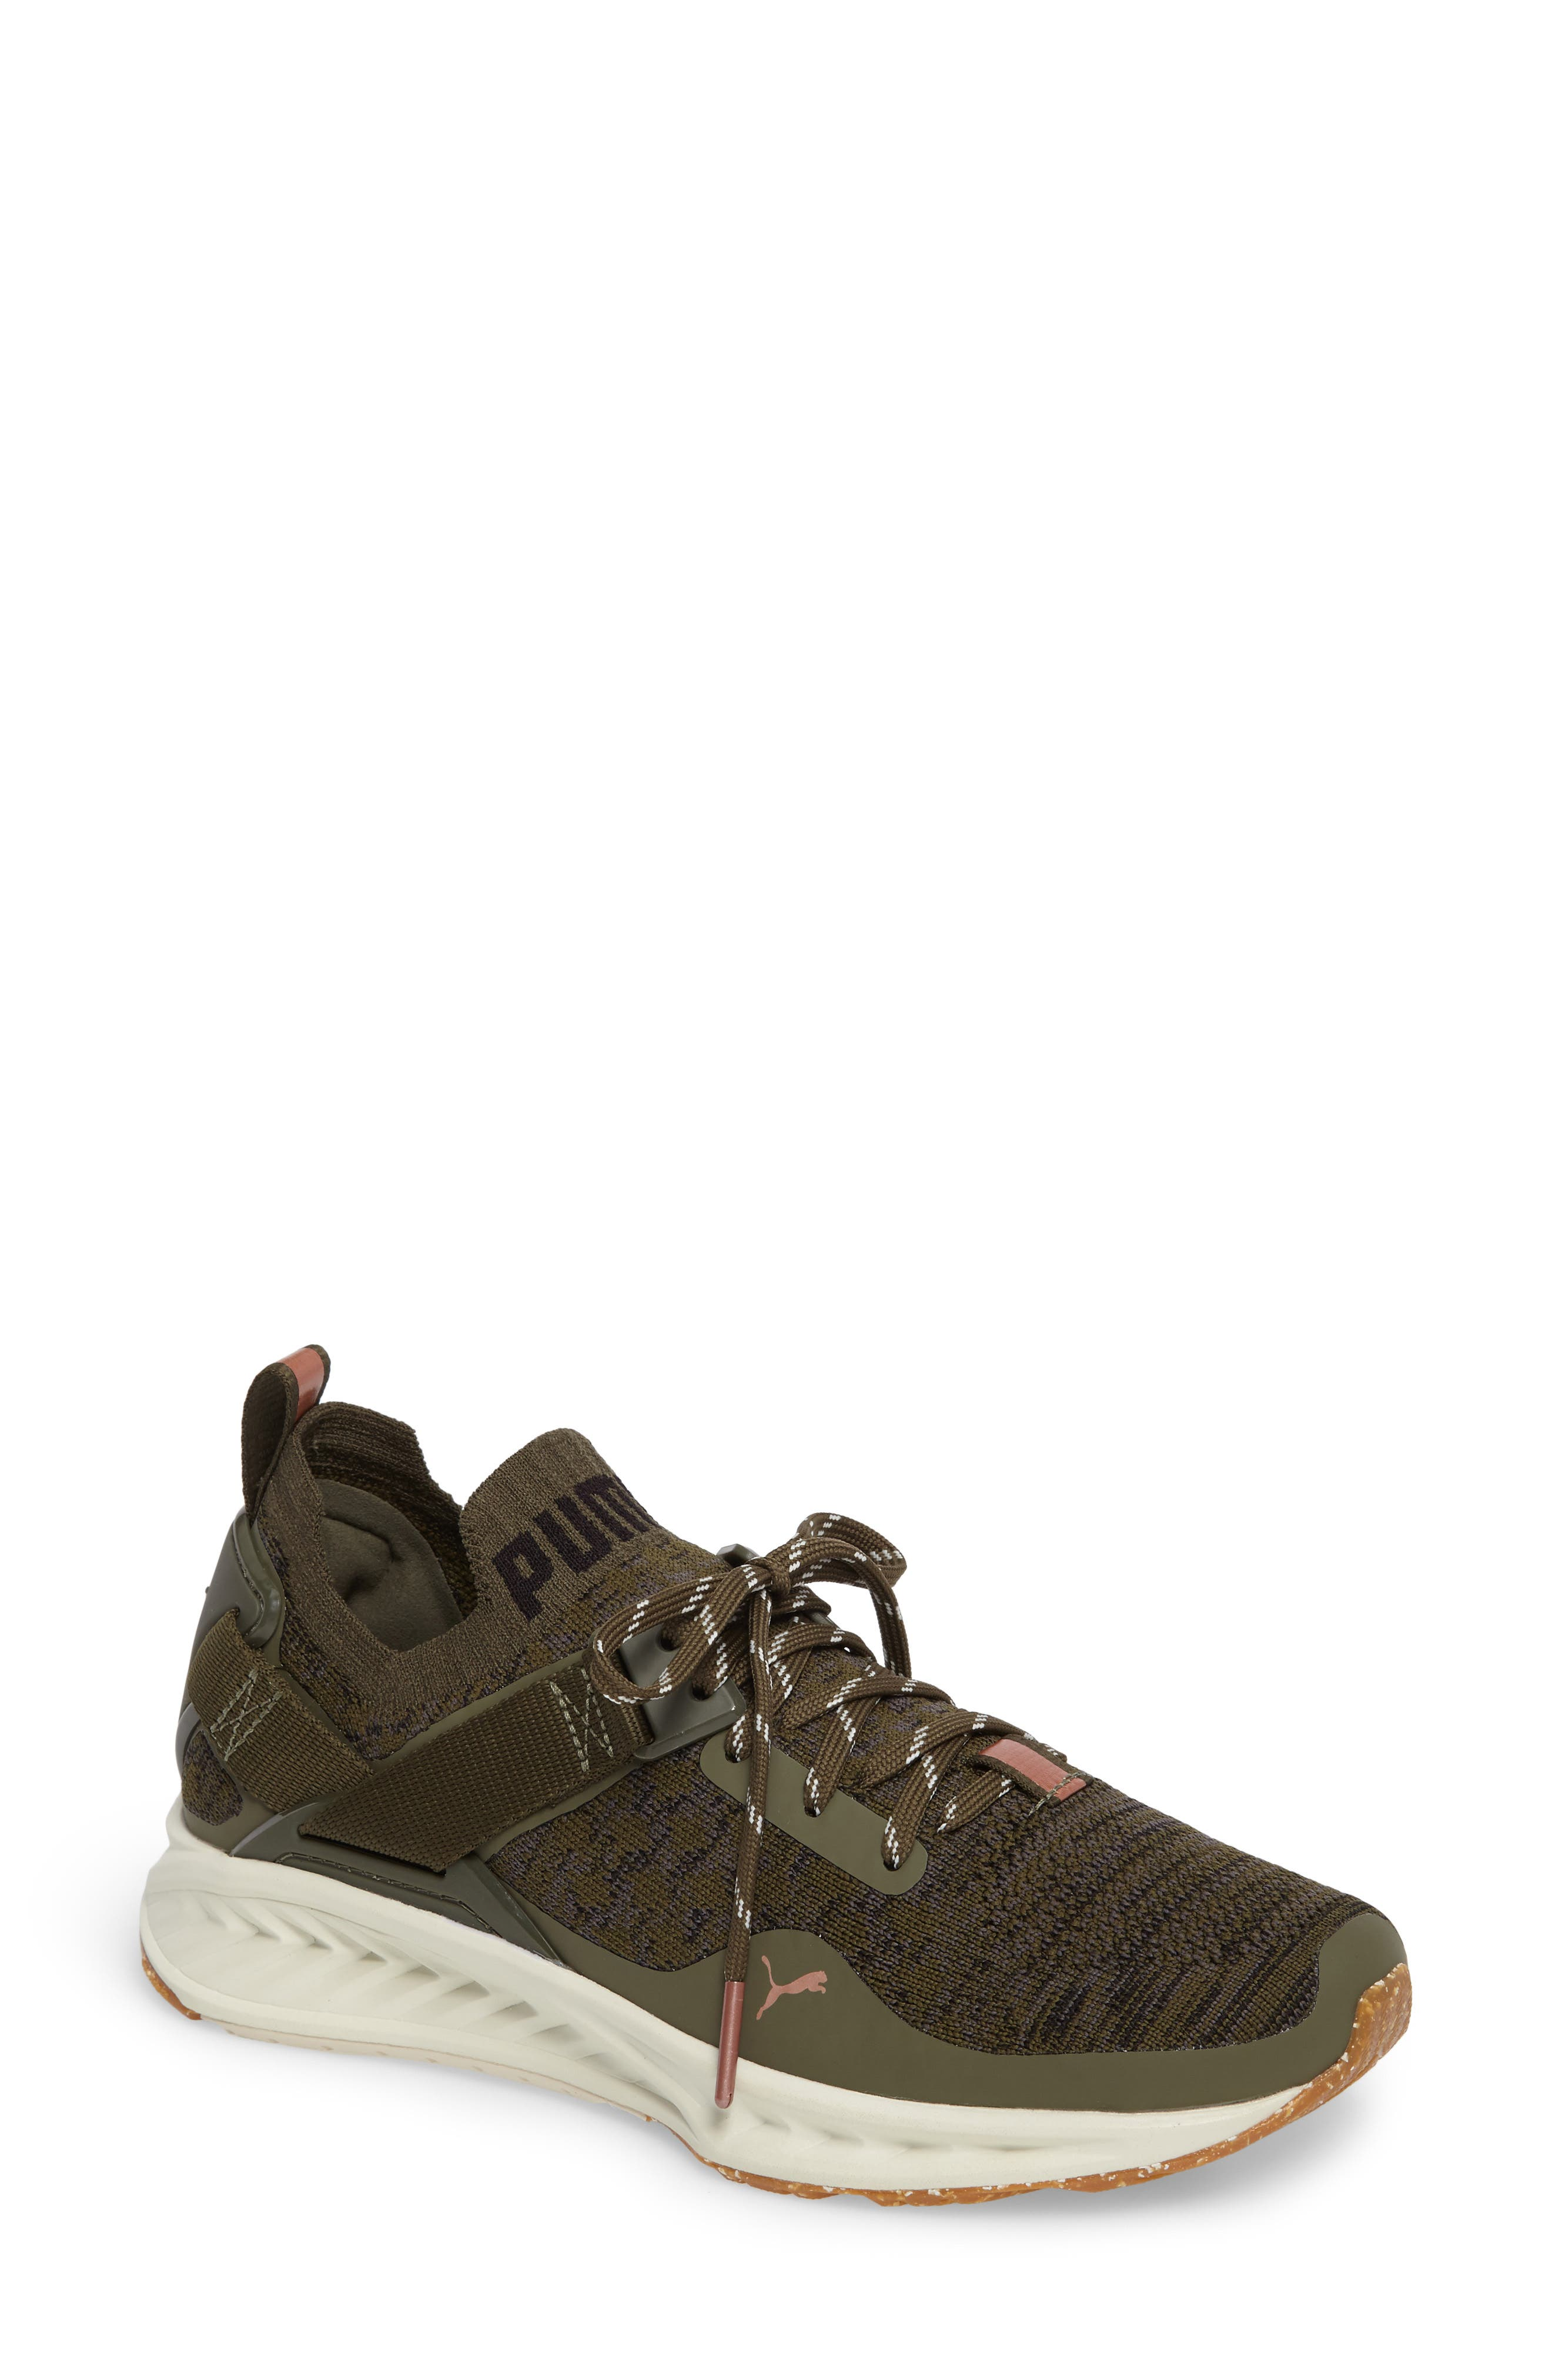 IGNITE evoKNIT Low Sneaker,                             Main thumbnail 1, color,                             Olive/ Black/ Quiet Shade